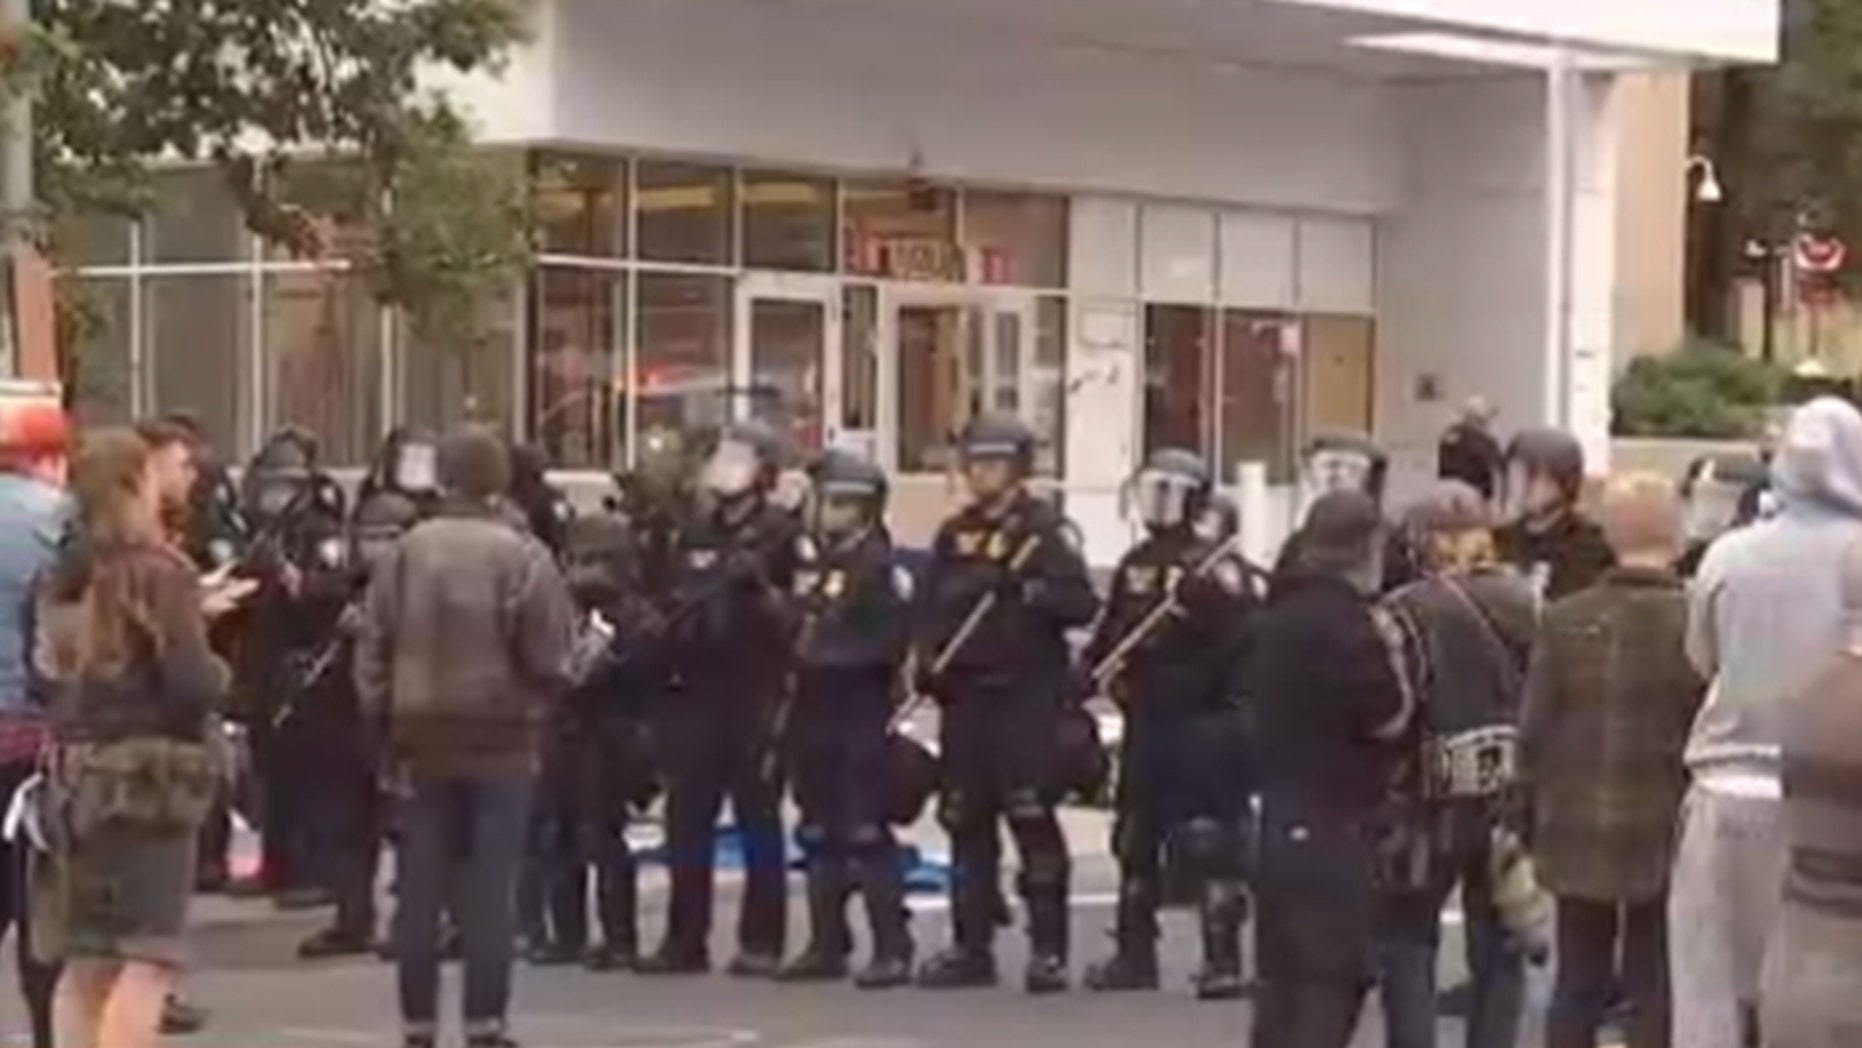 Homeland Security police officers are trying to re-open Thursday an ICE facility in Portland, Ore., that was shut down by protesters.